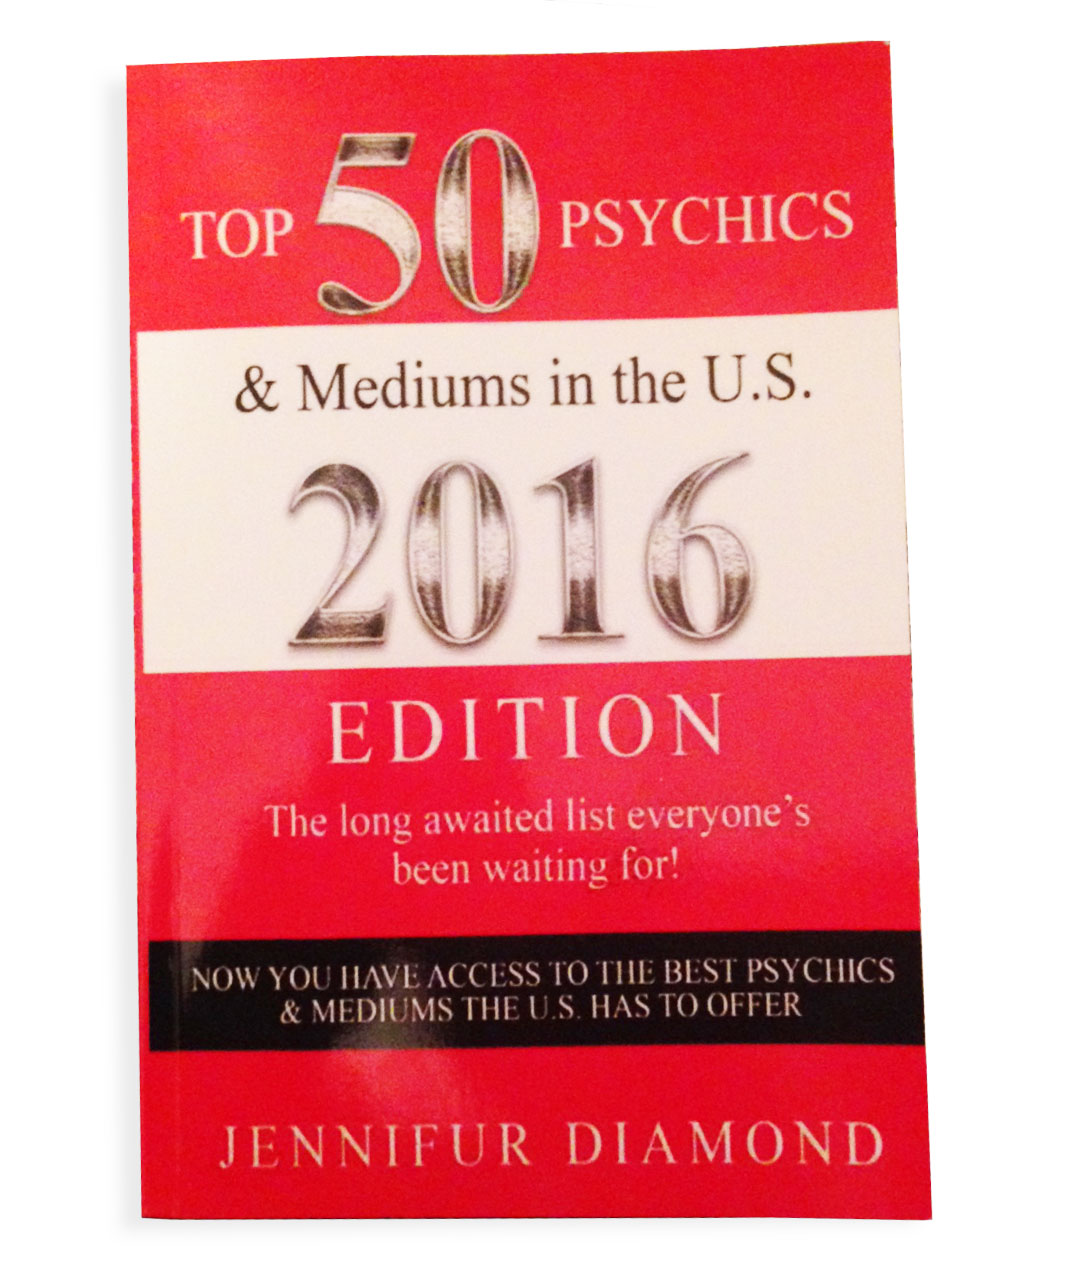 """As an internationally known intuitive,Jenni is featured as one of the nation's top psychics in """"The Top 50 Psychics and Mediums in the U.S. 2016 Edition"""".  Check it out ."""